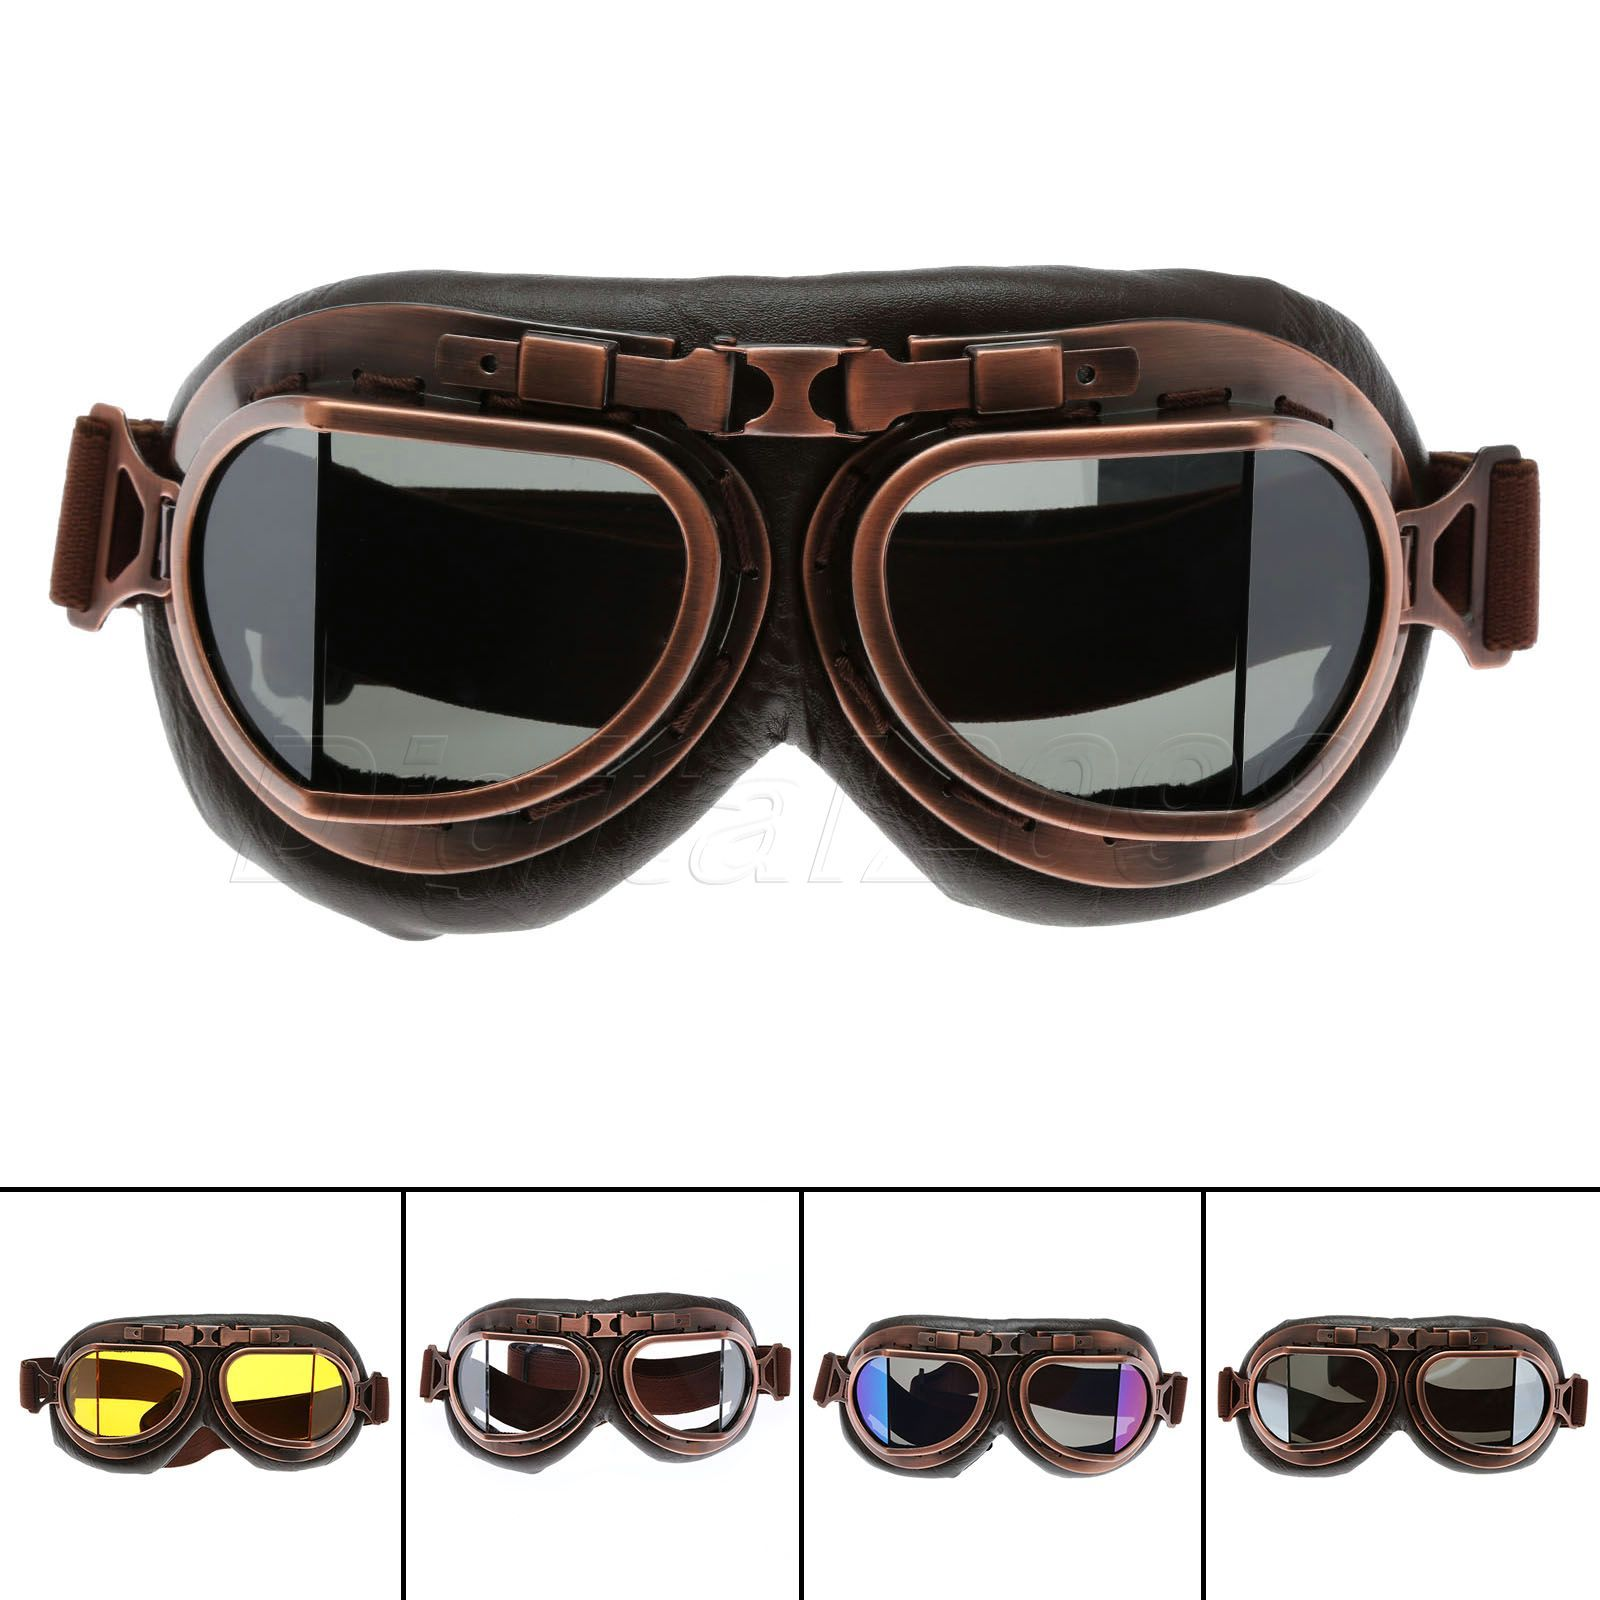 Yetaha WWII RAF Vintage Motorcycle Goggles Harley Motocross Aviator Pilot Cruiser Glasses ATV Dirt Bike <font><b>Motor</b></font> Helmet 5 Colors